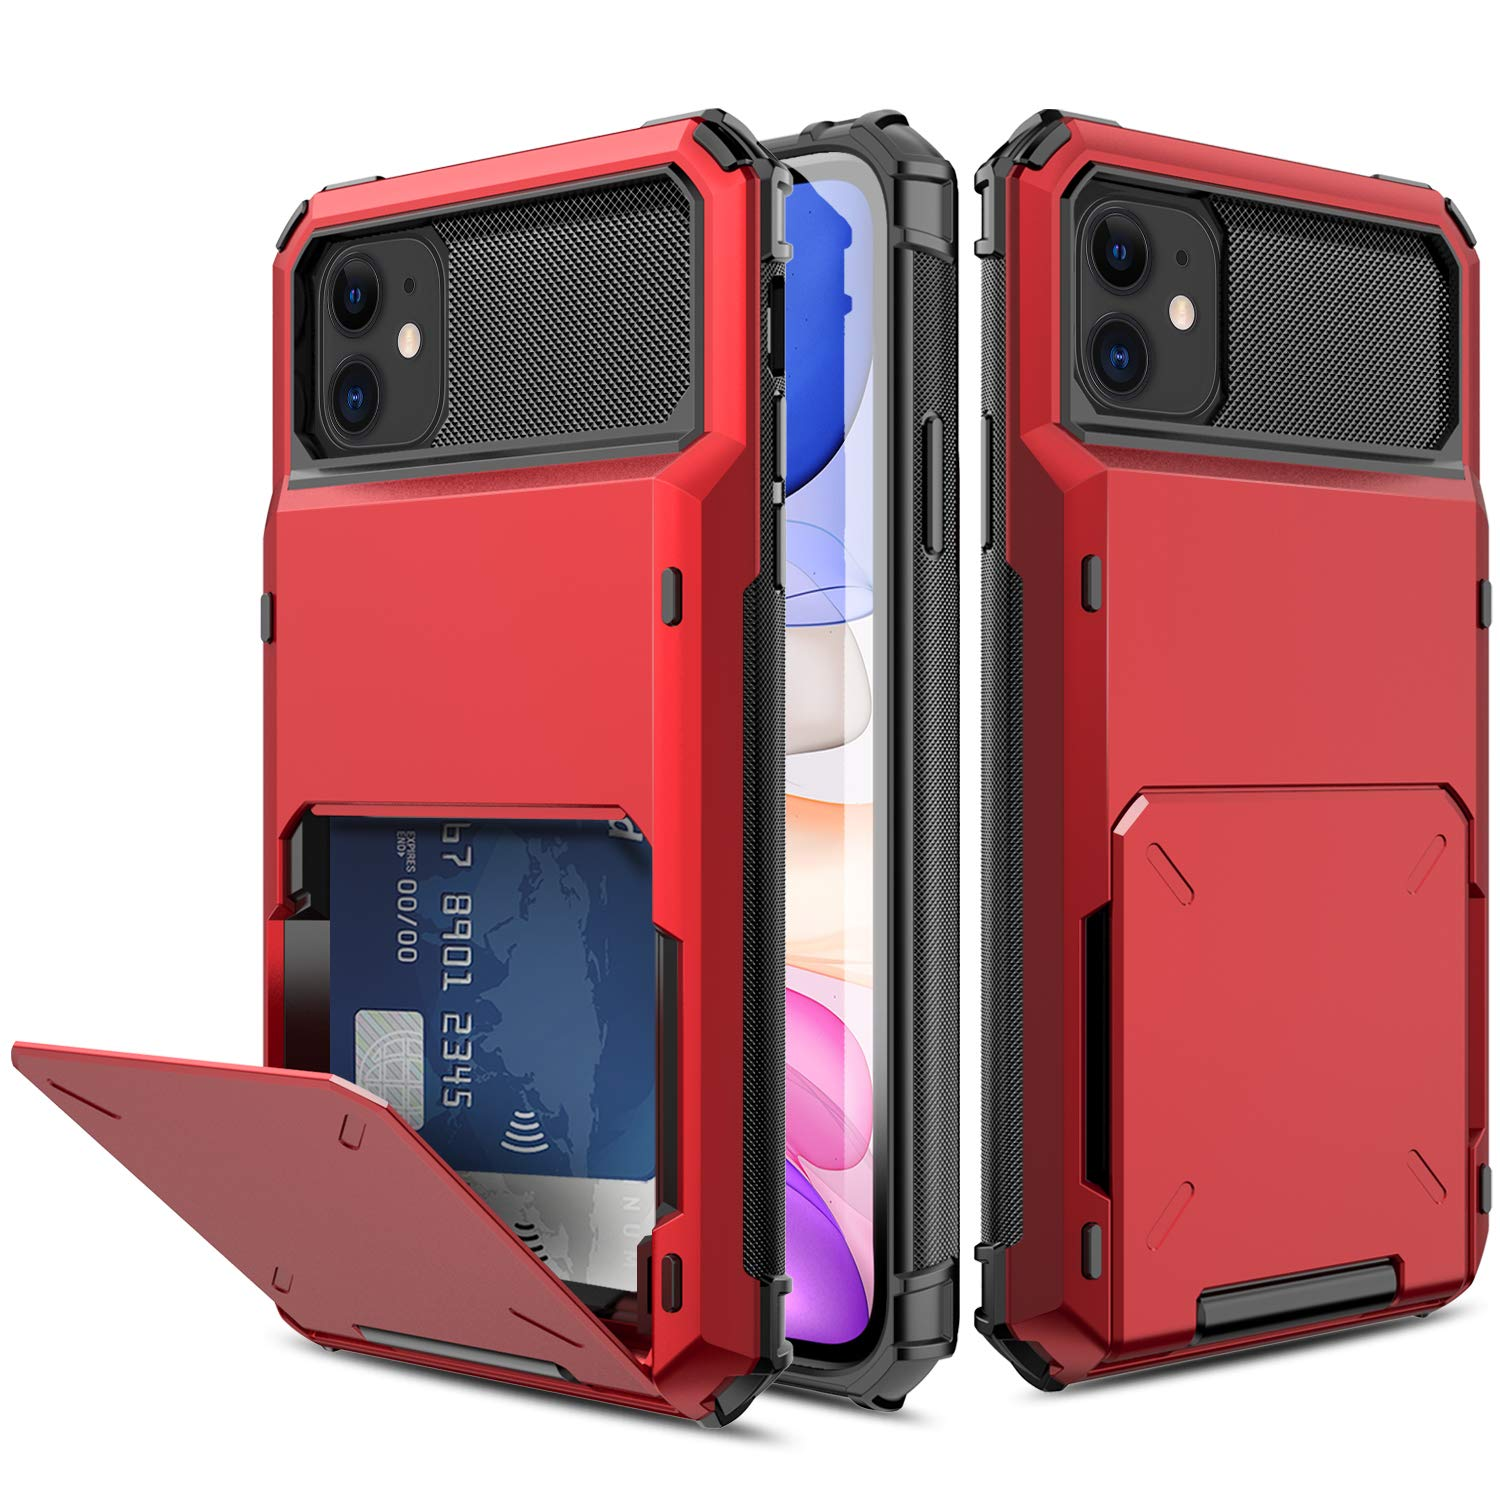 Yunerz Compatible iPhone 11 Case, iPhone 11 Wallet Dual Layer Protective Case with Card Holder Slot for iPhone 11 2019 6.1inch(red)